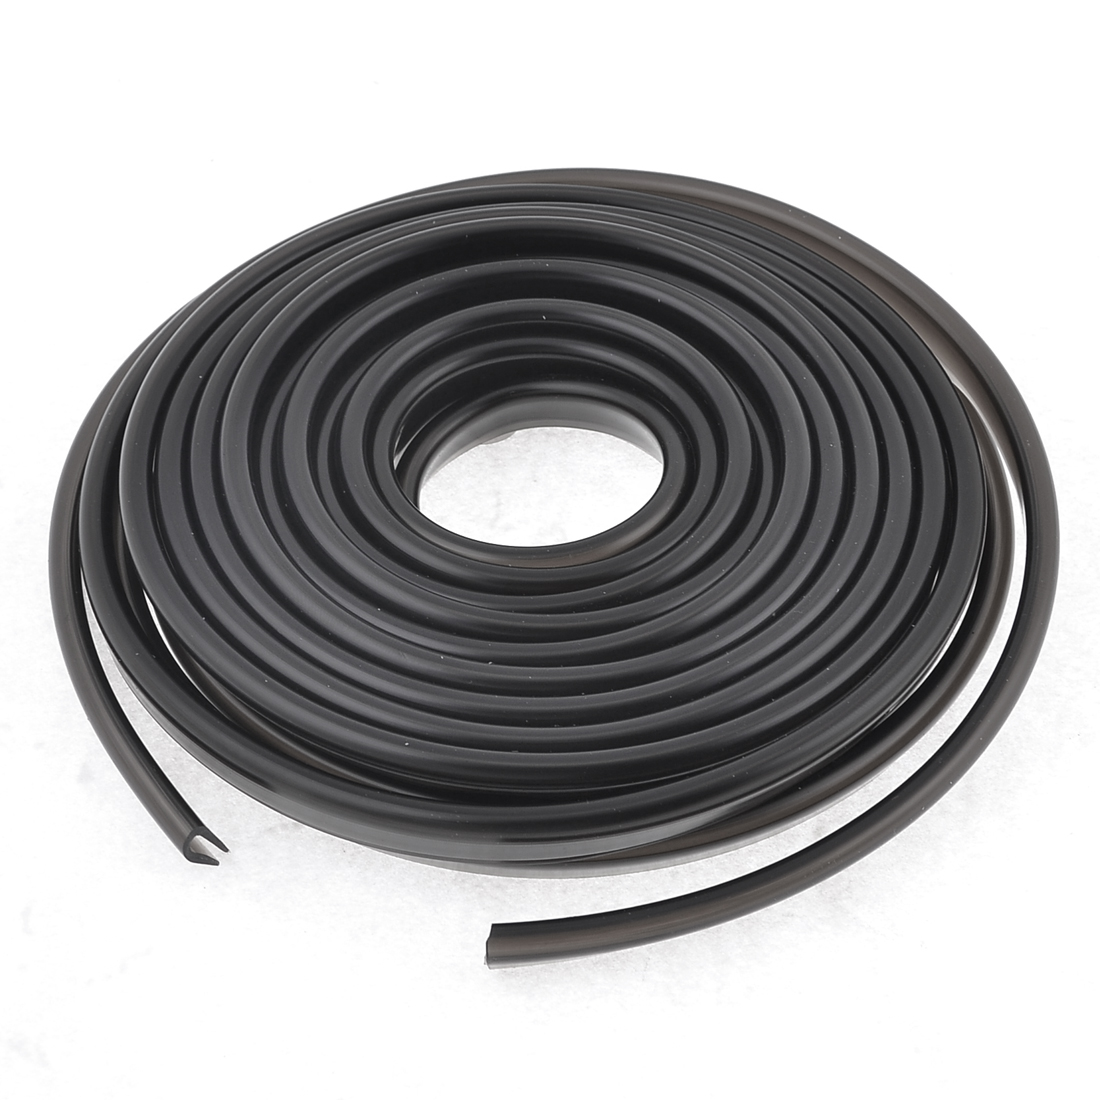 6M x 6mm x 10mm Dark Gray Car Soft Plastic Door Bumper Moulding Trim Strip